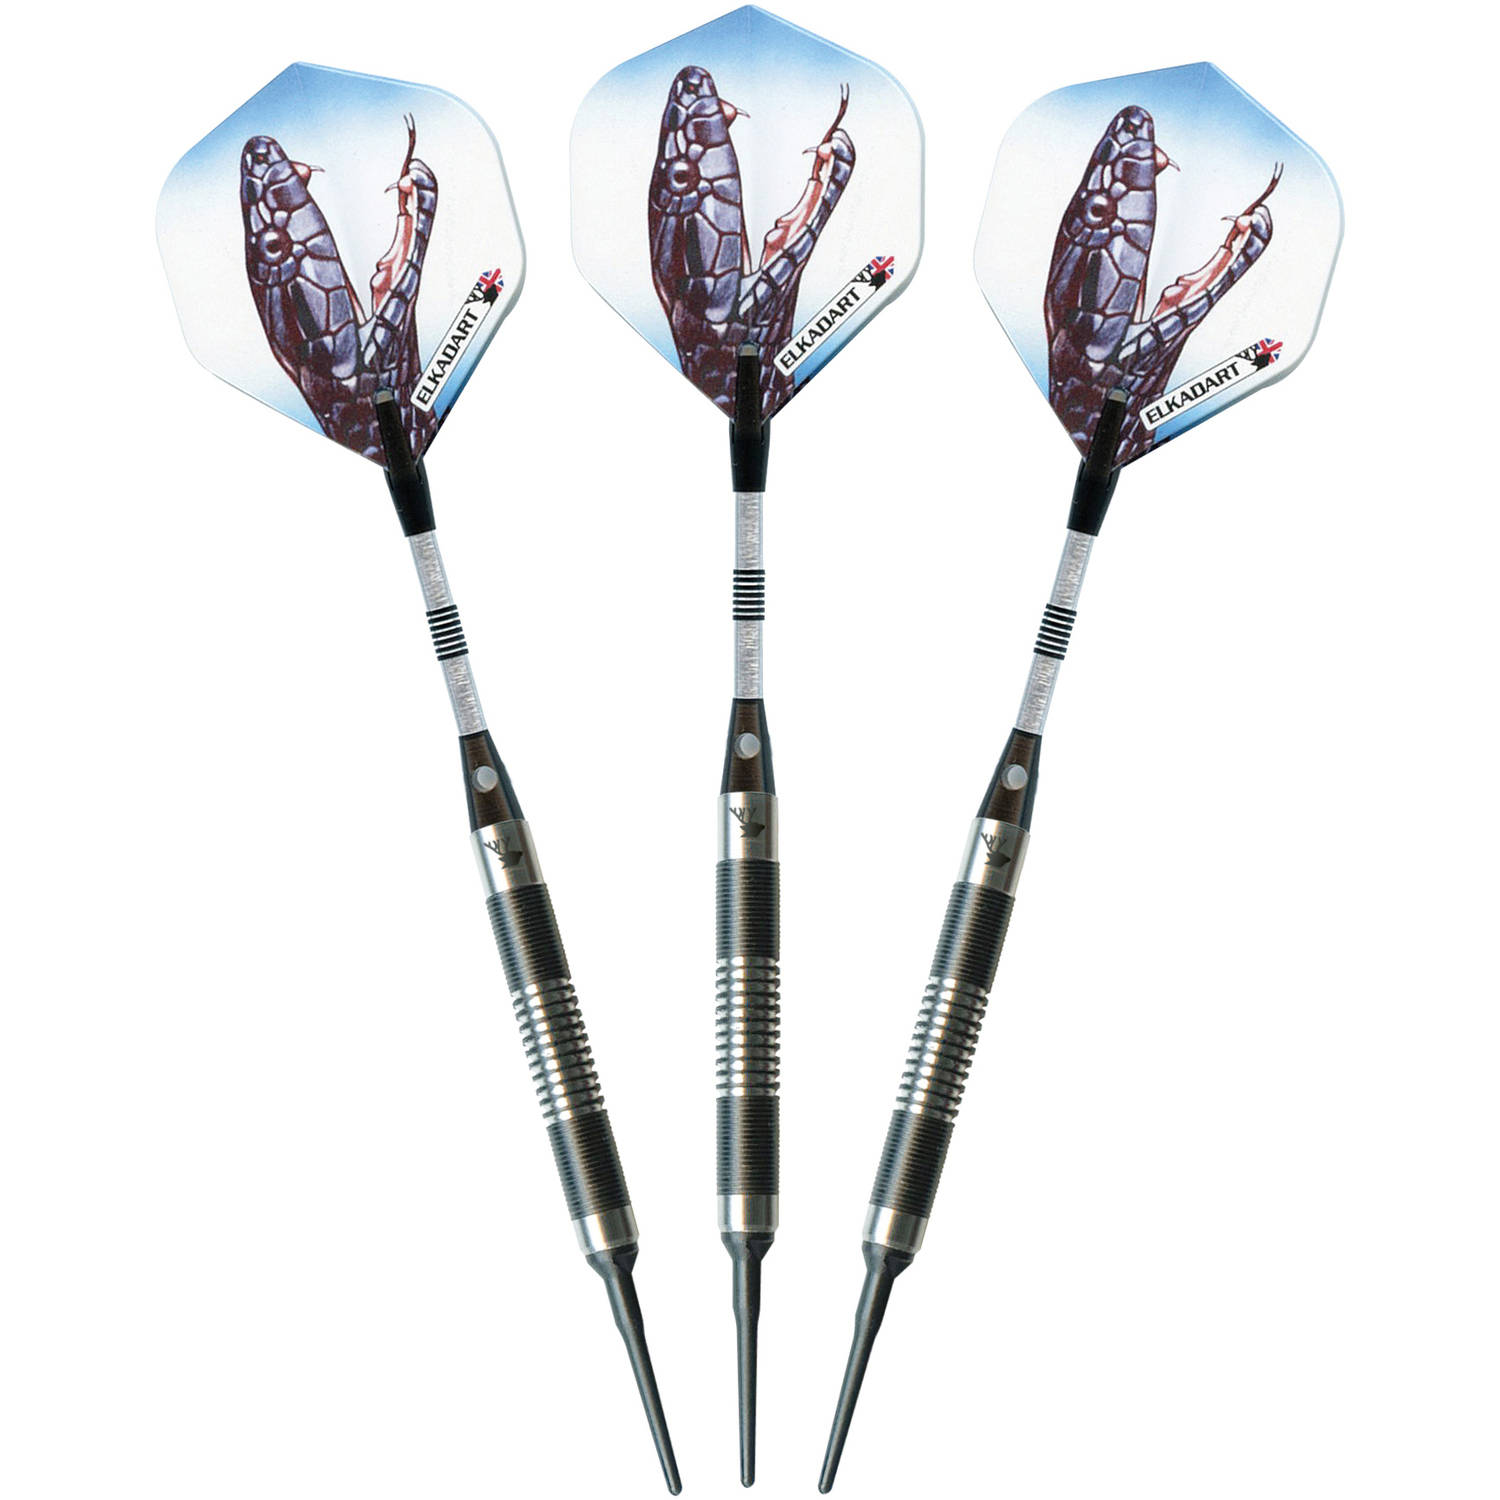 Elkadart Black Mamba Tungsten Soft Tip Darts, Thin Barrel, 14g